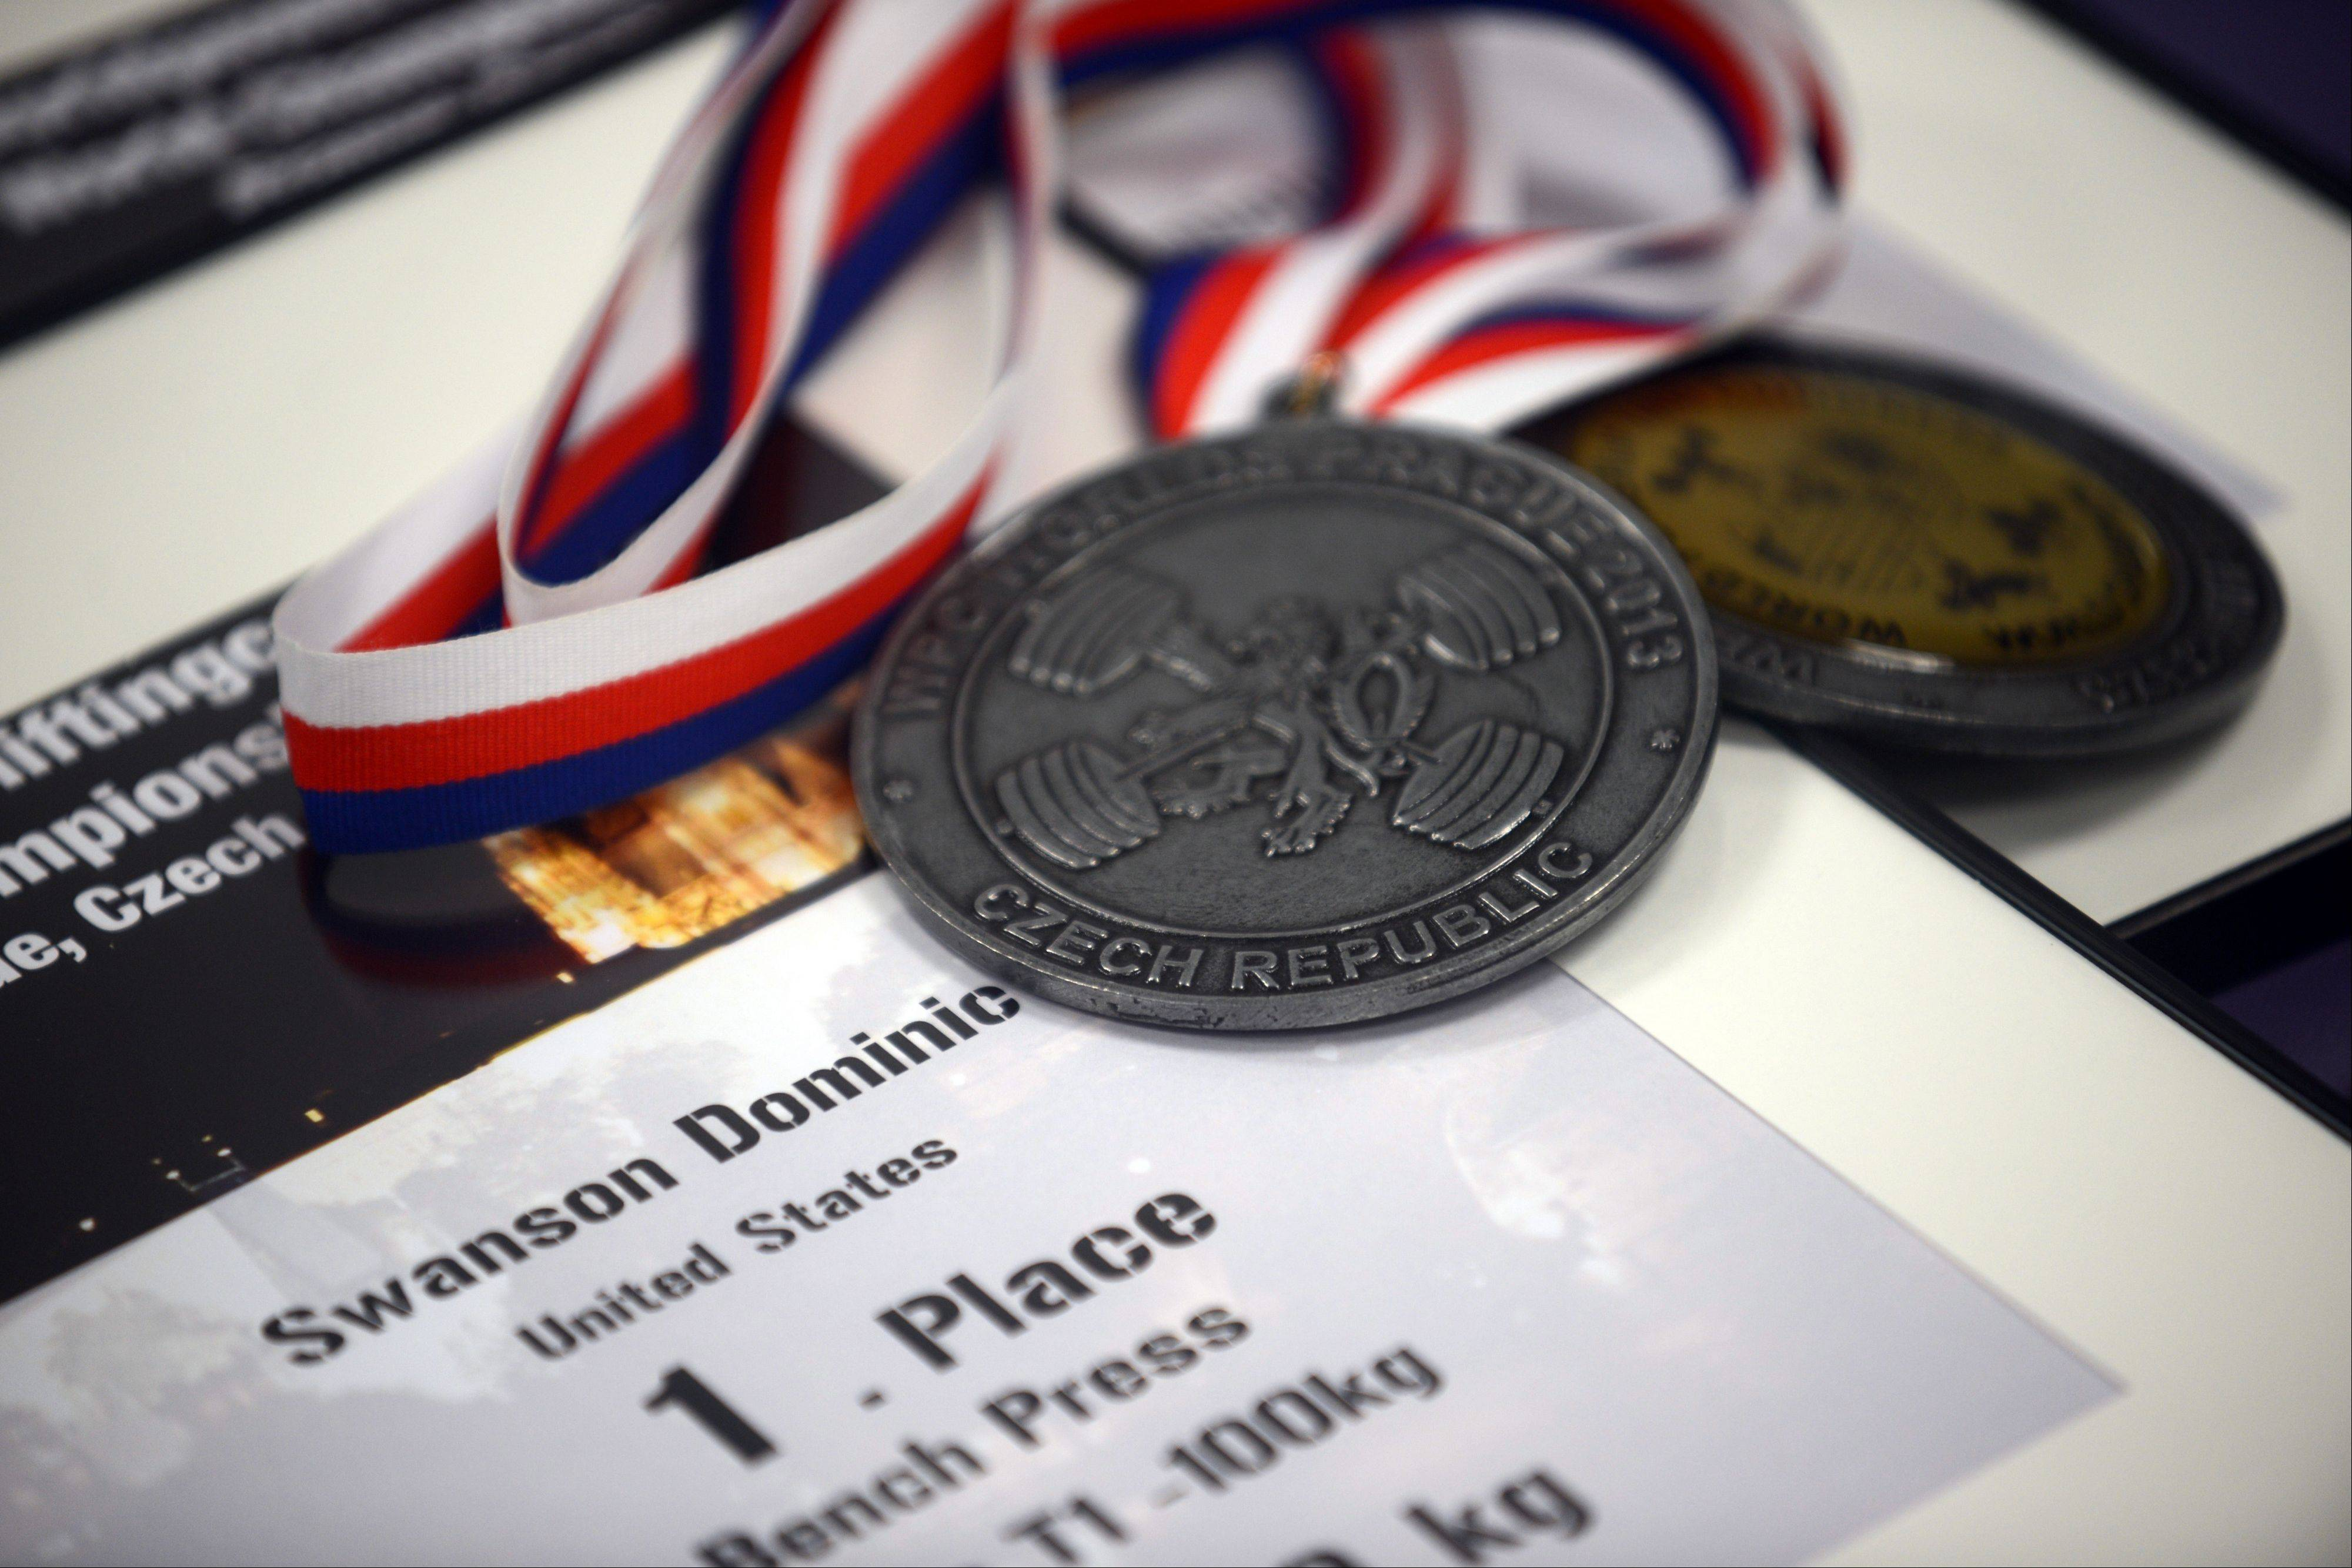 The medals won by Dominic Swanson at the World Powerlifting Congress World Championships in Prague.